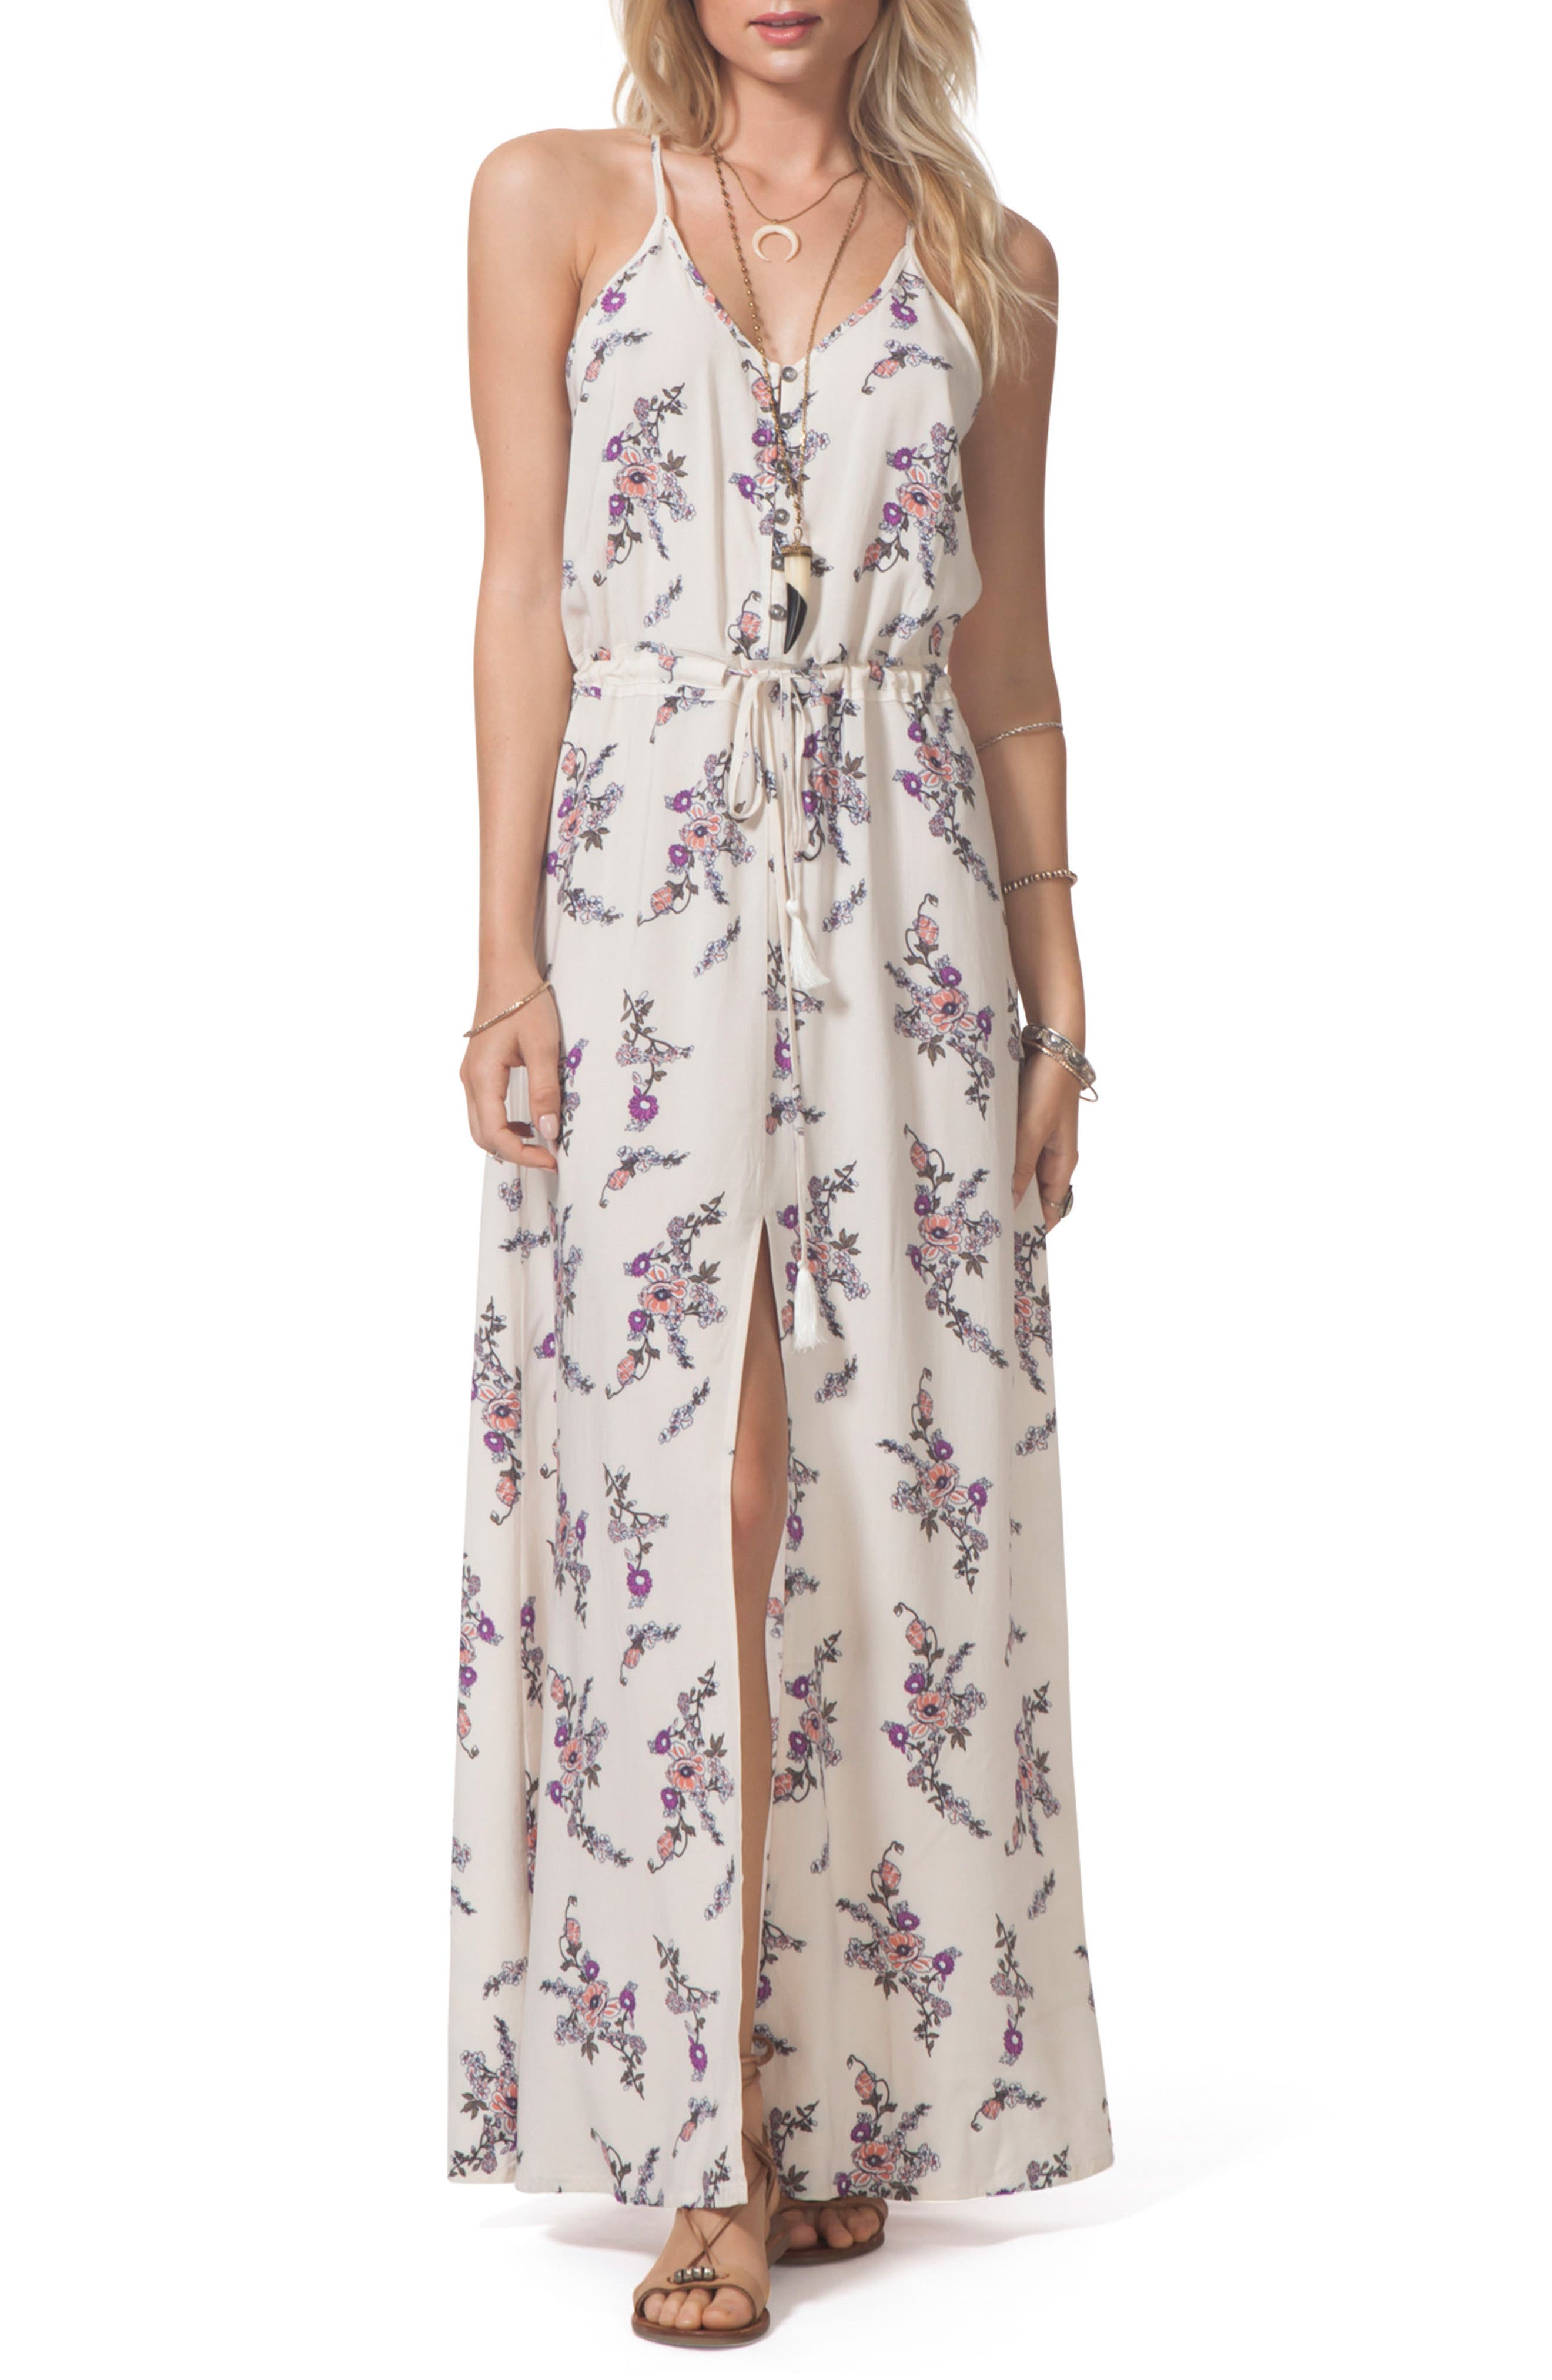 Malia Floral Print Maxi Dress,                             Main thumbnail 1, color,                             111